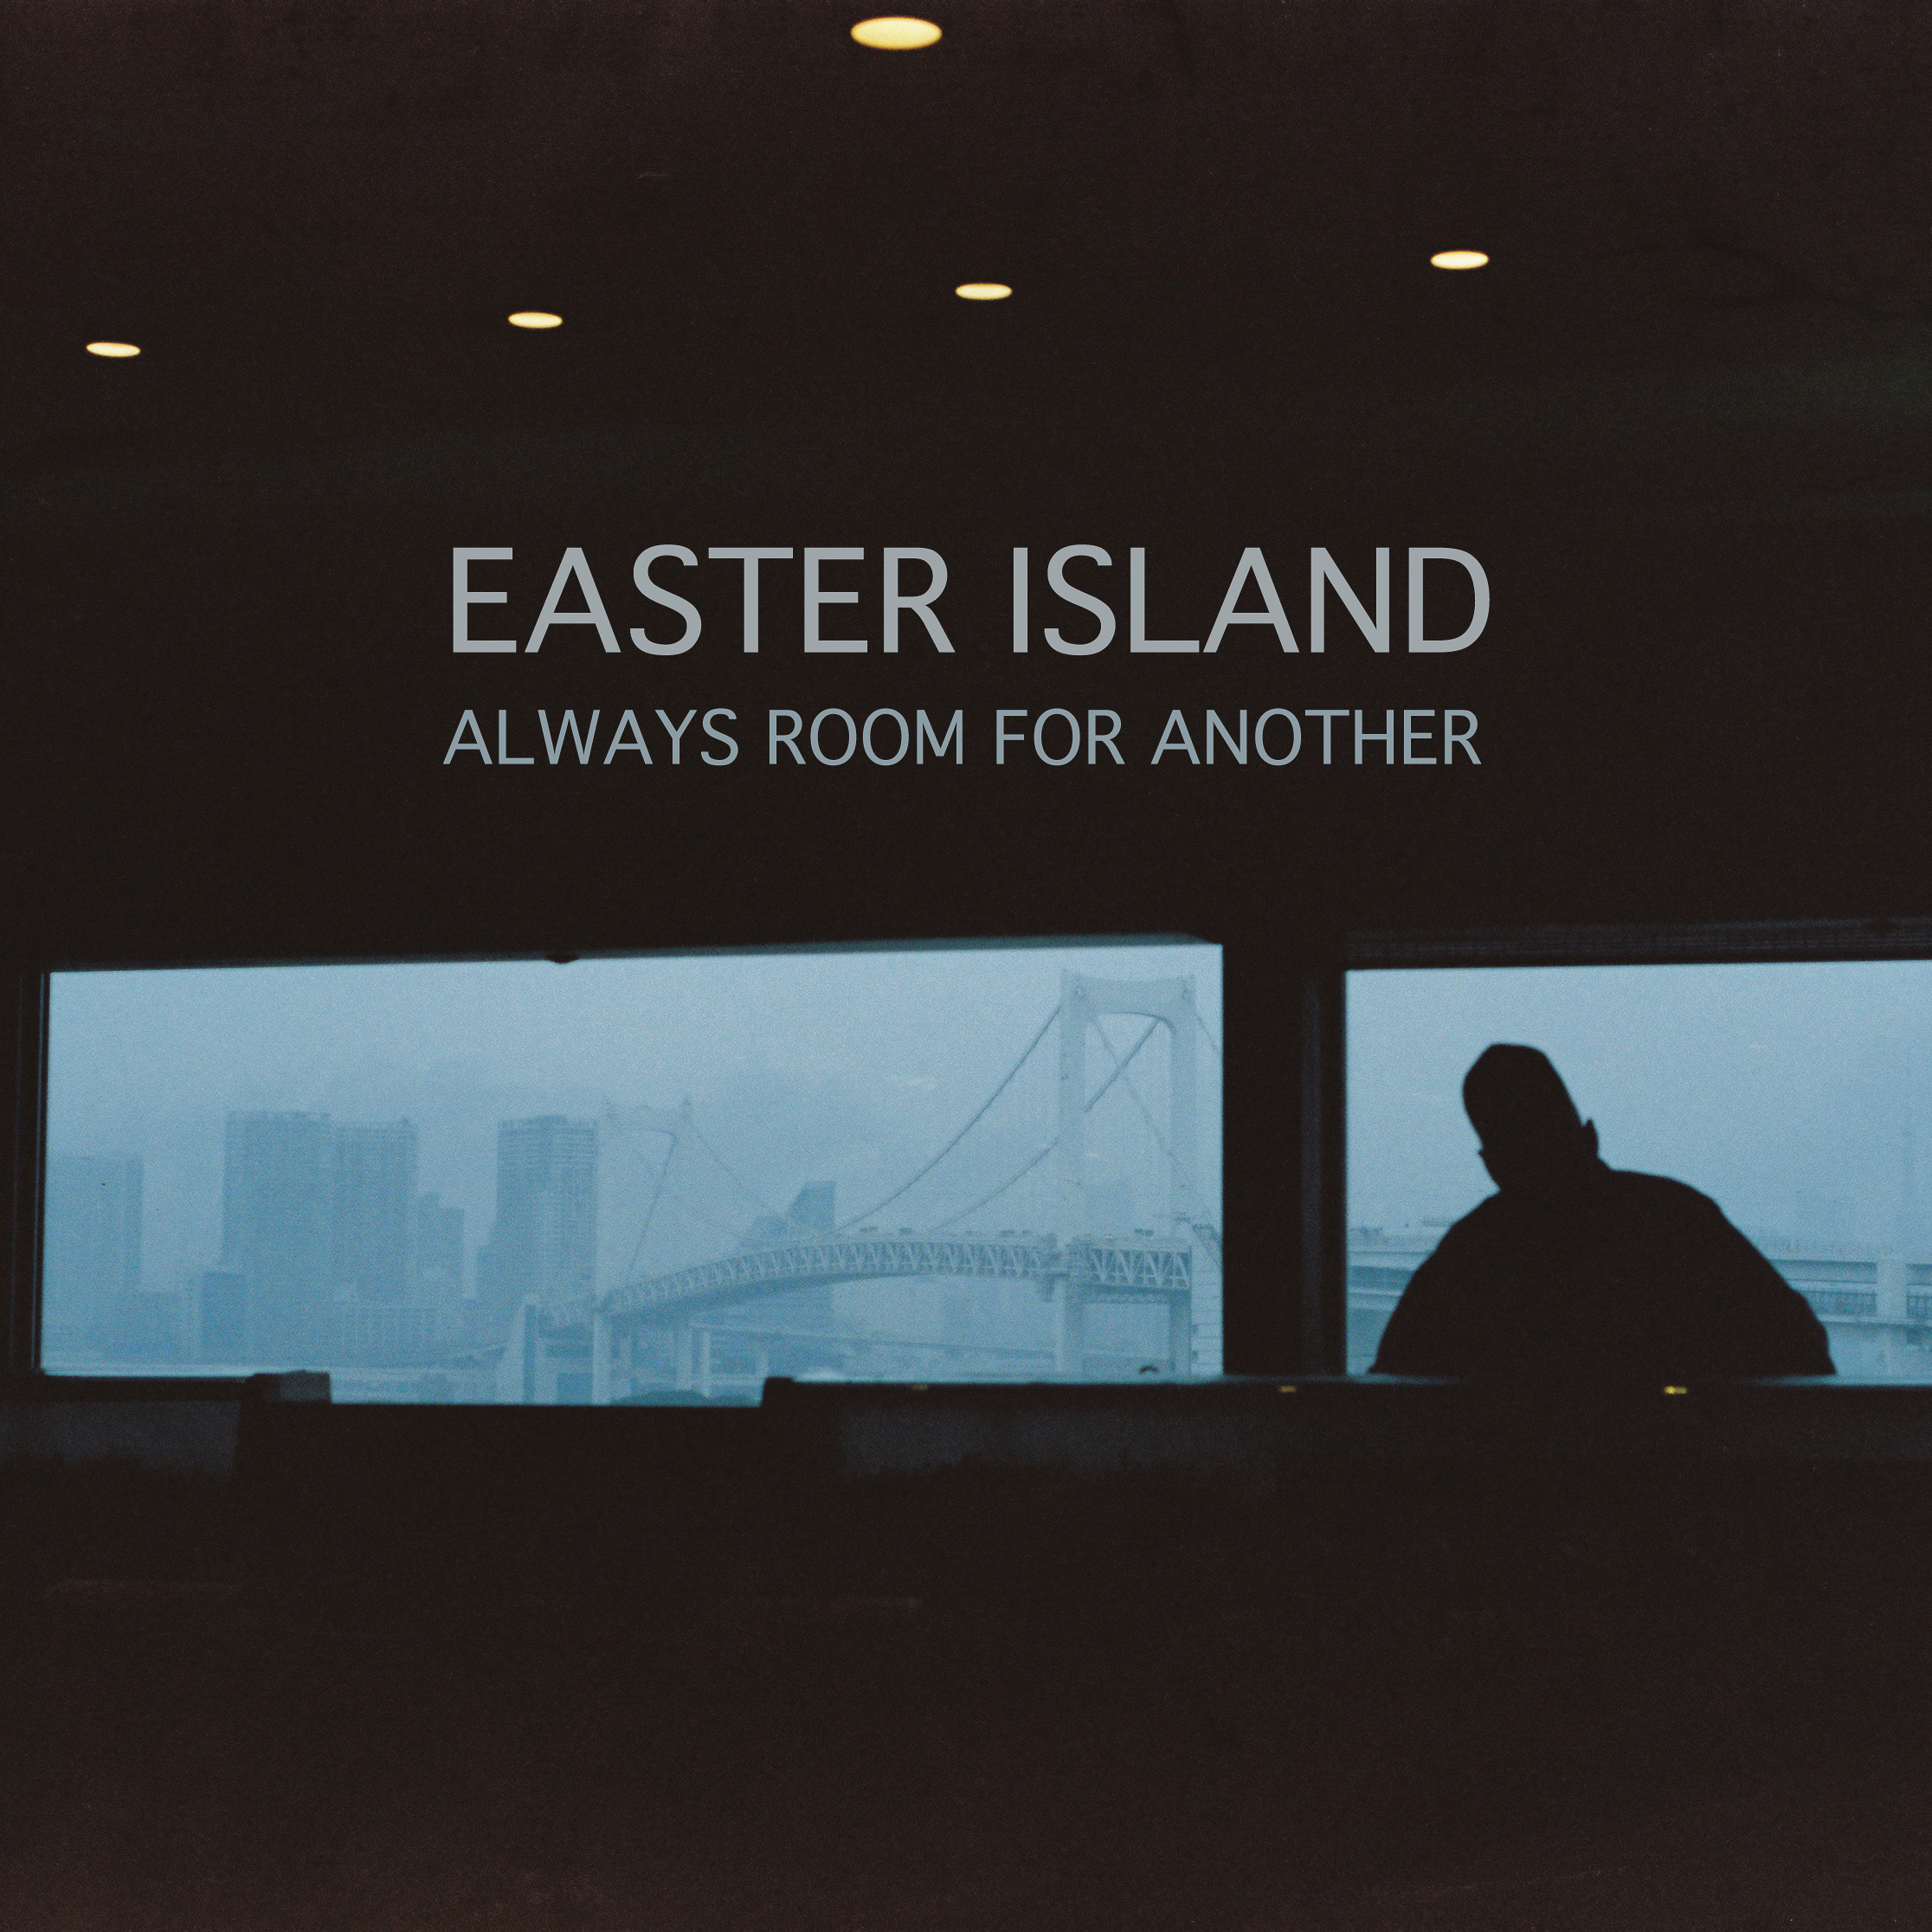 easter island - always room for another